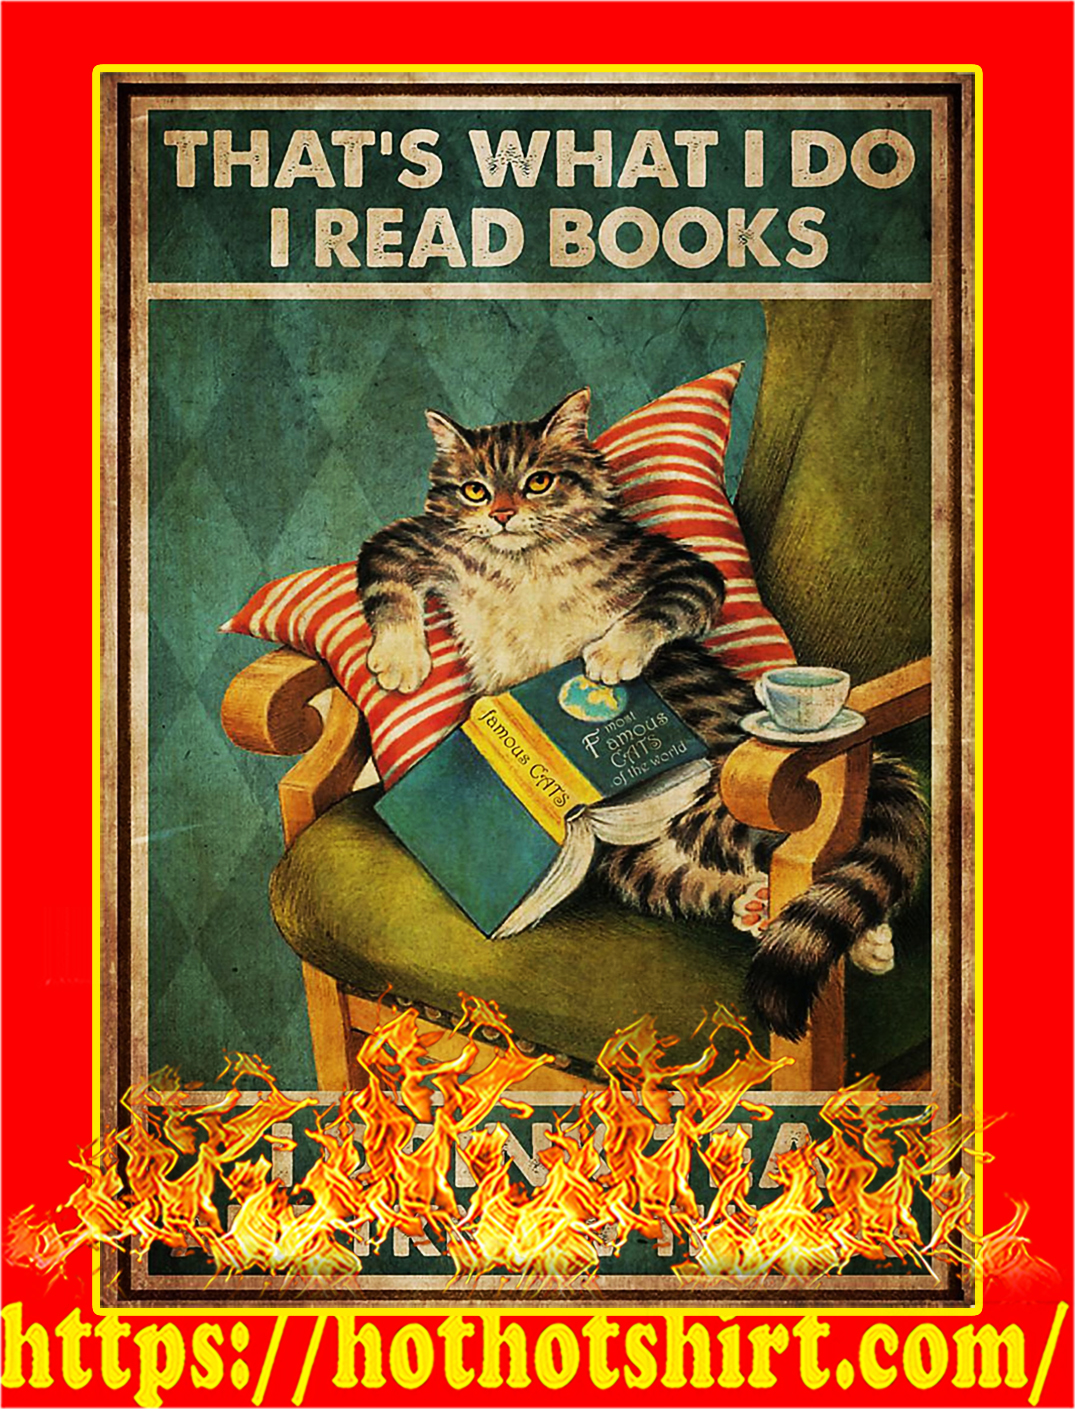 Cat That's what I do I read books poster - A2